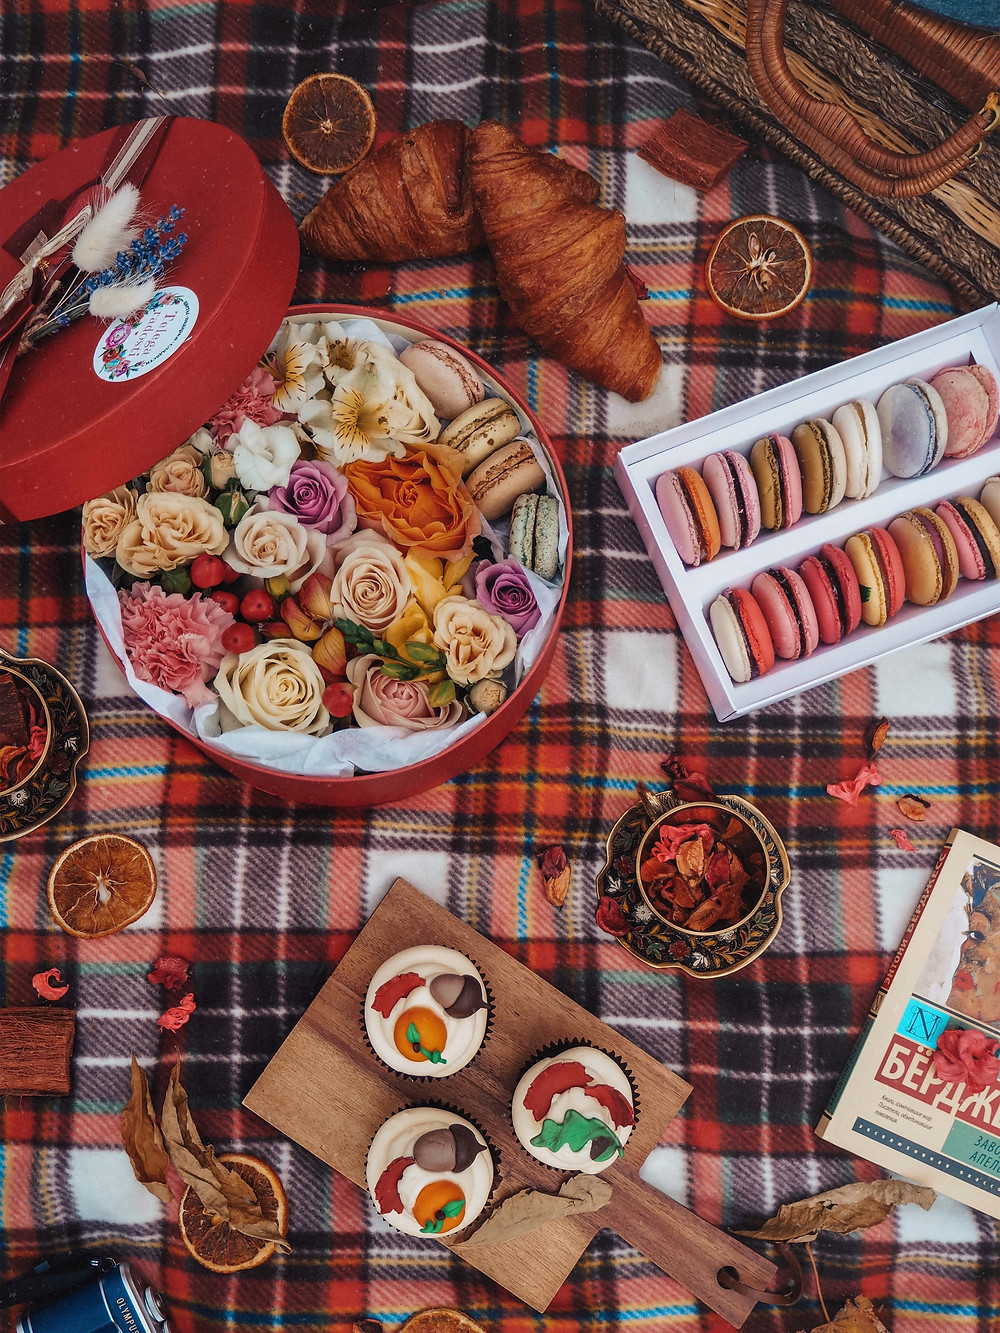 fall picnic with croisants, macarons, roses, fruit, basket